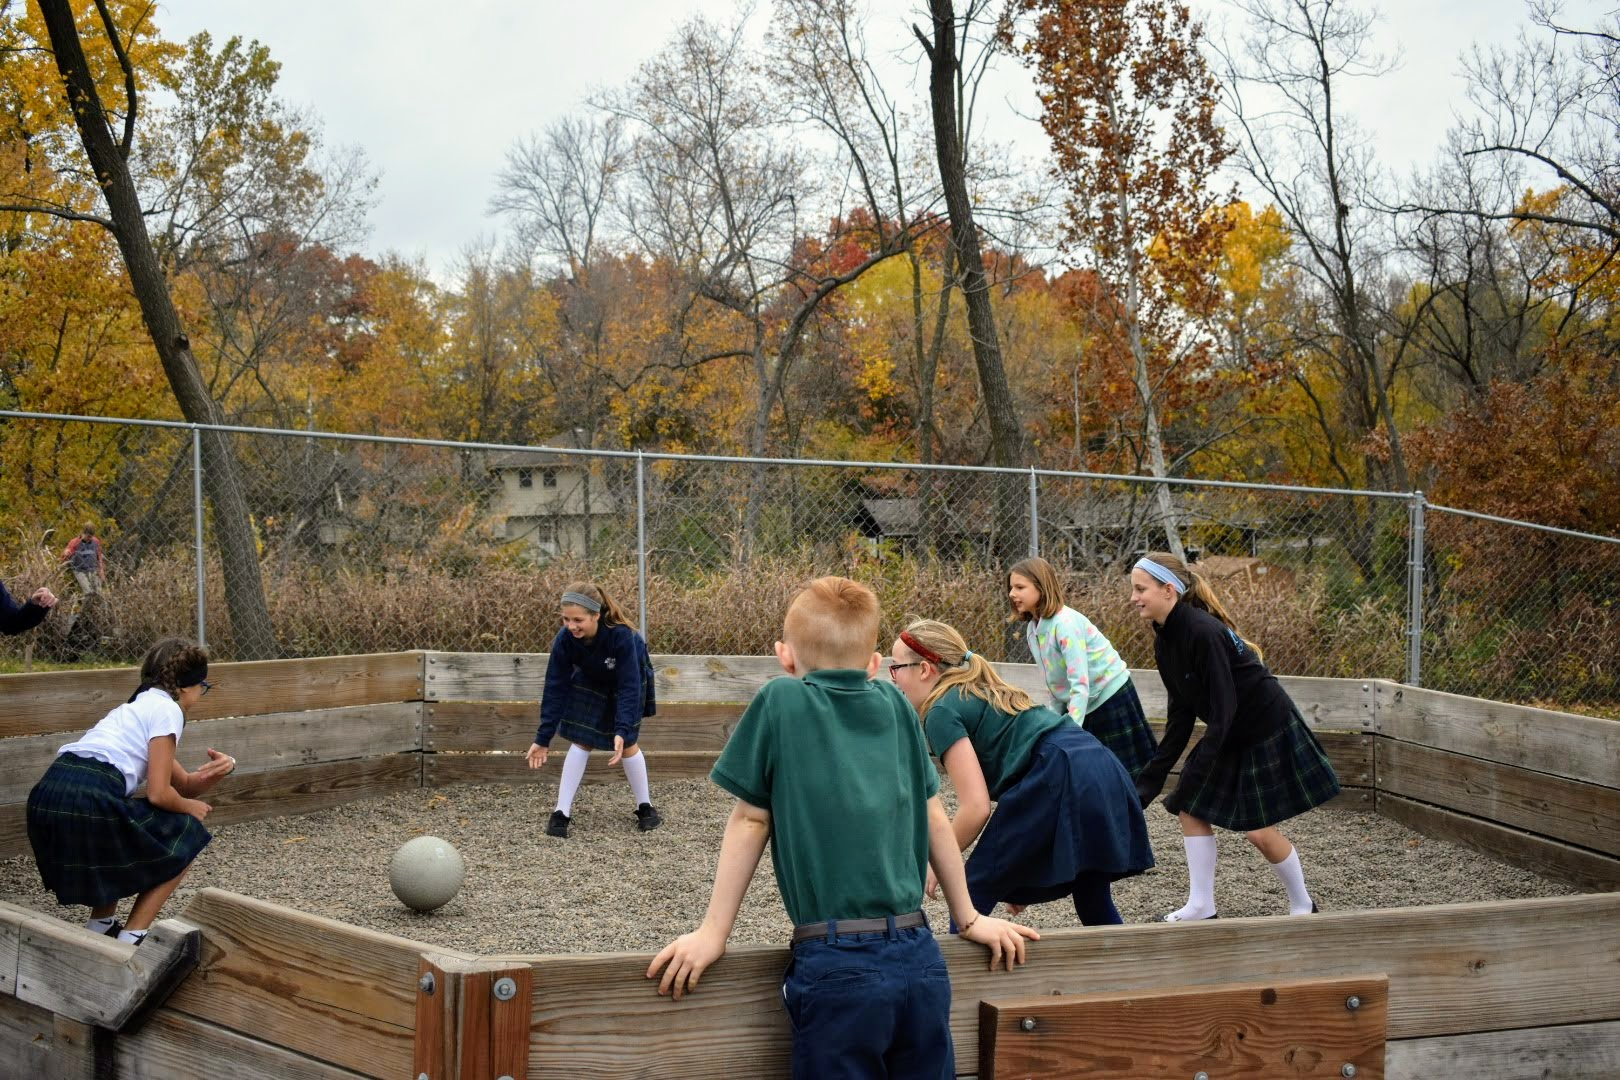 Whitefield Academy middle schoolers playing ga-ga ball at recess